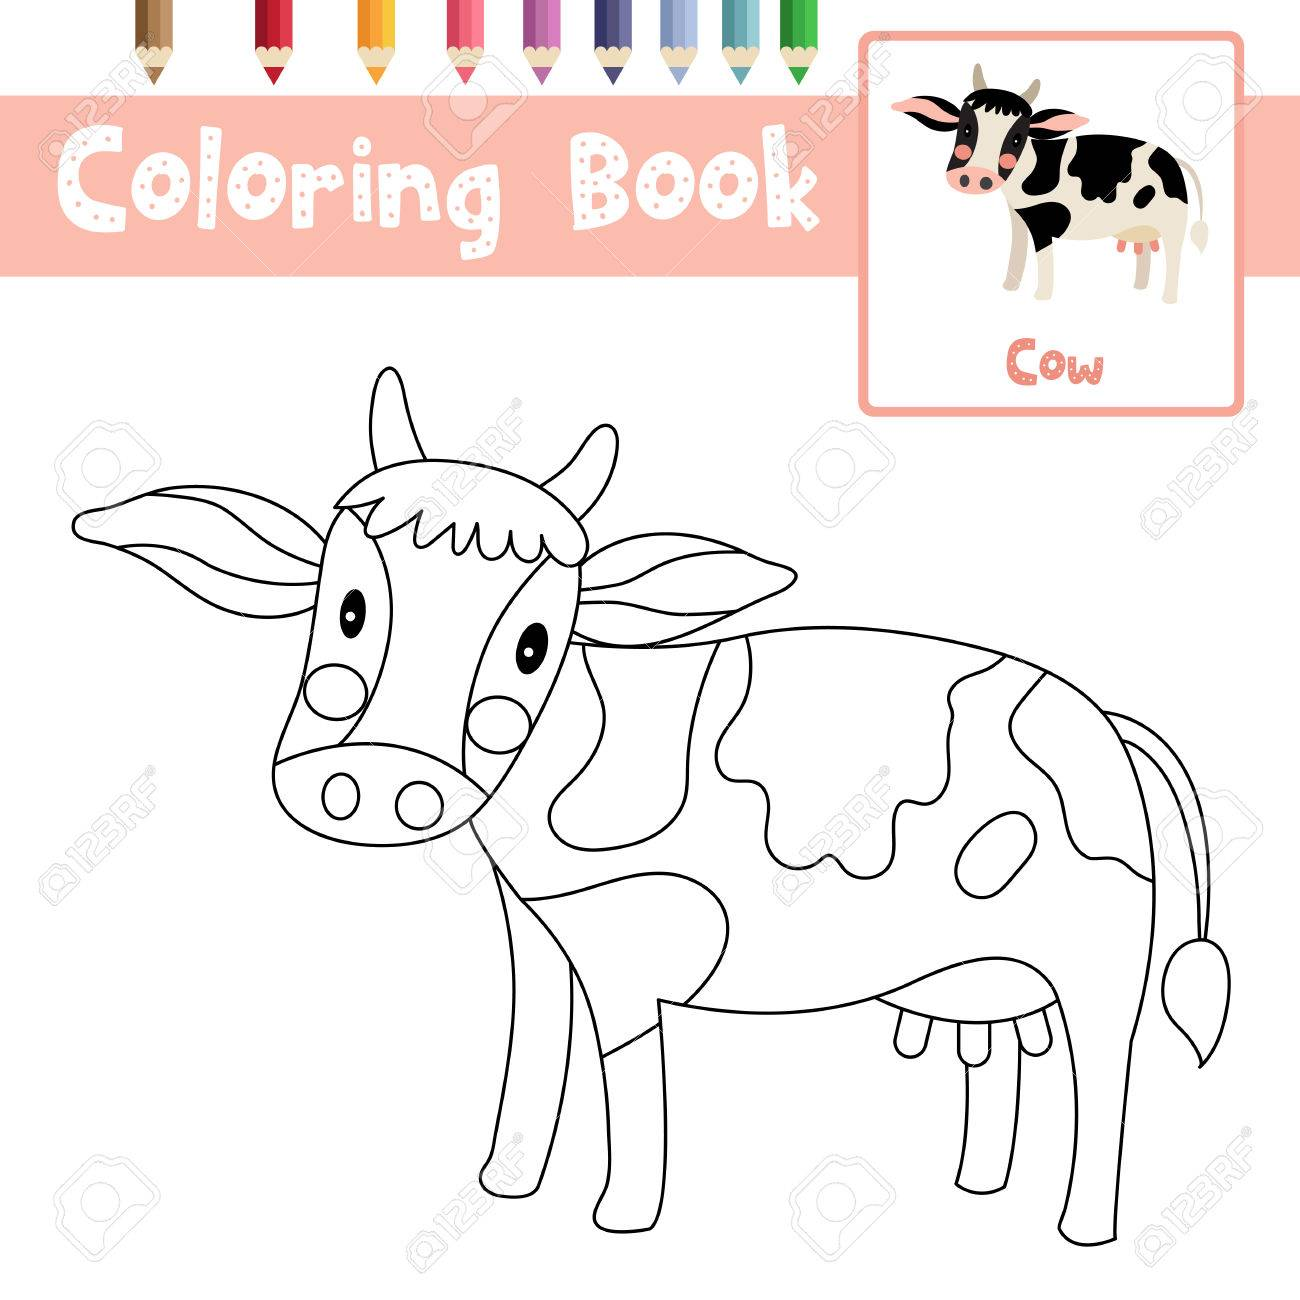 Coloring Page Of Cow Animals For Preschool Kids Activity Educational ...